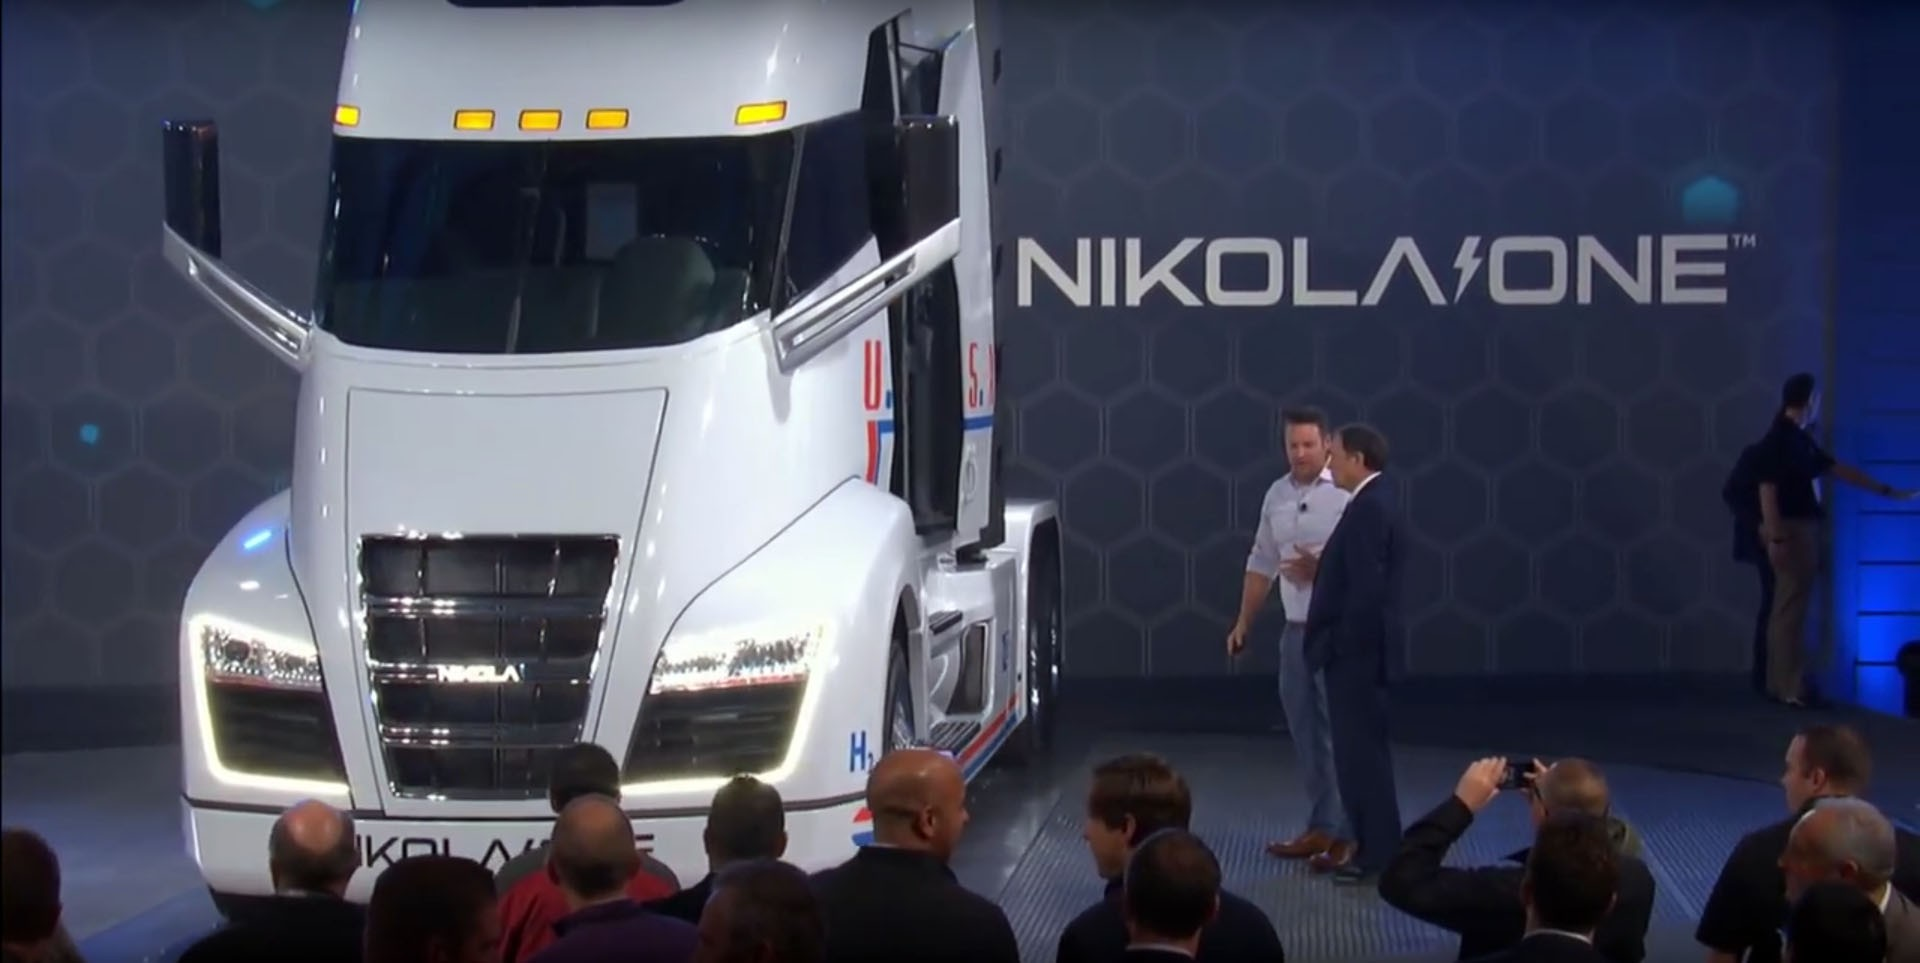 New lawsuit claims Tesla ripped-off semi-truck design